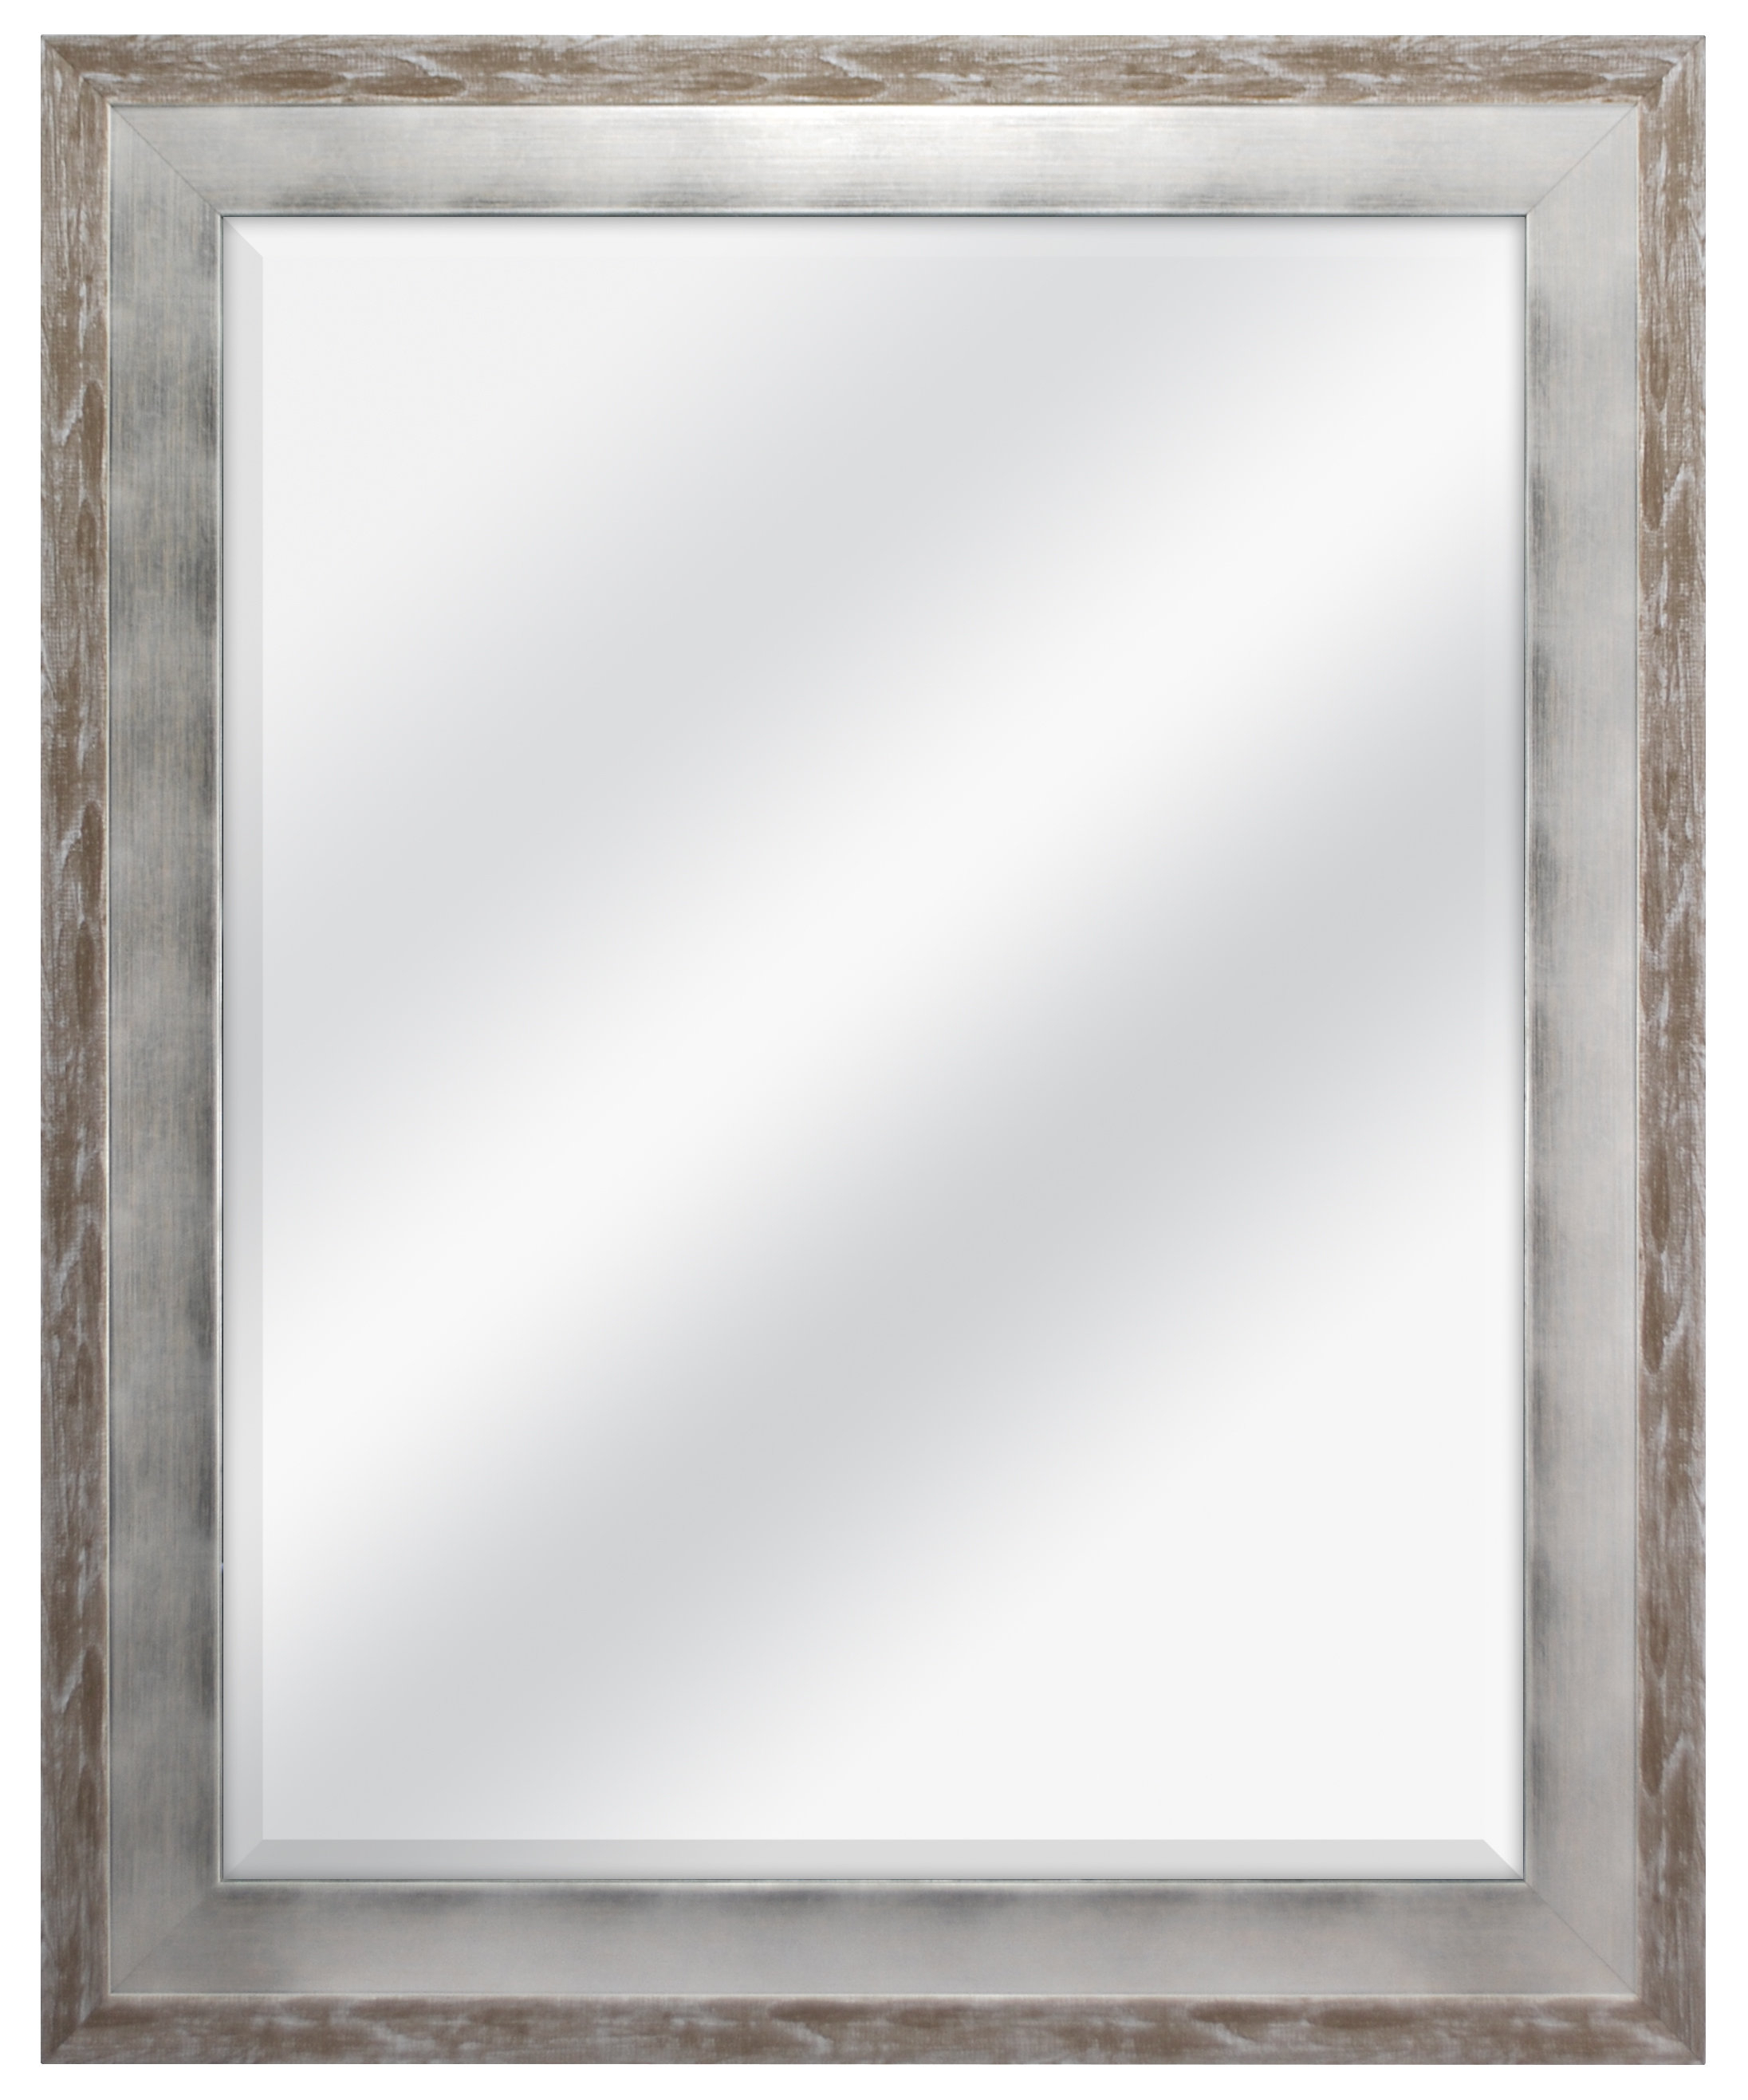 Epinal Shabby Elegance Wall Mirror With Famous Epinal Shabby Elegance Wall Mirrors (View 3 of 20)